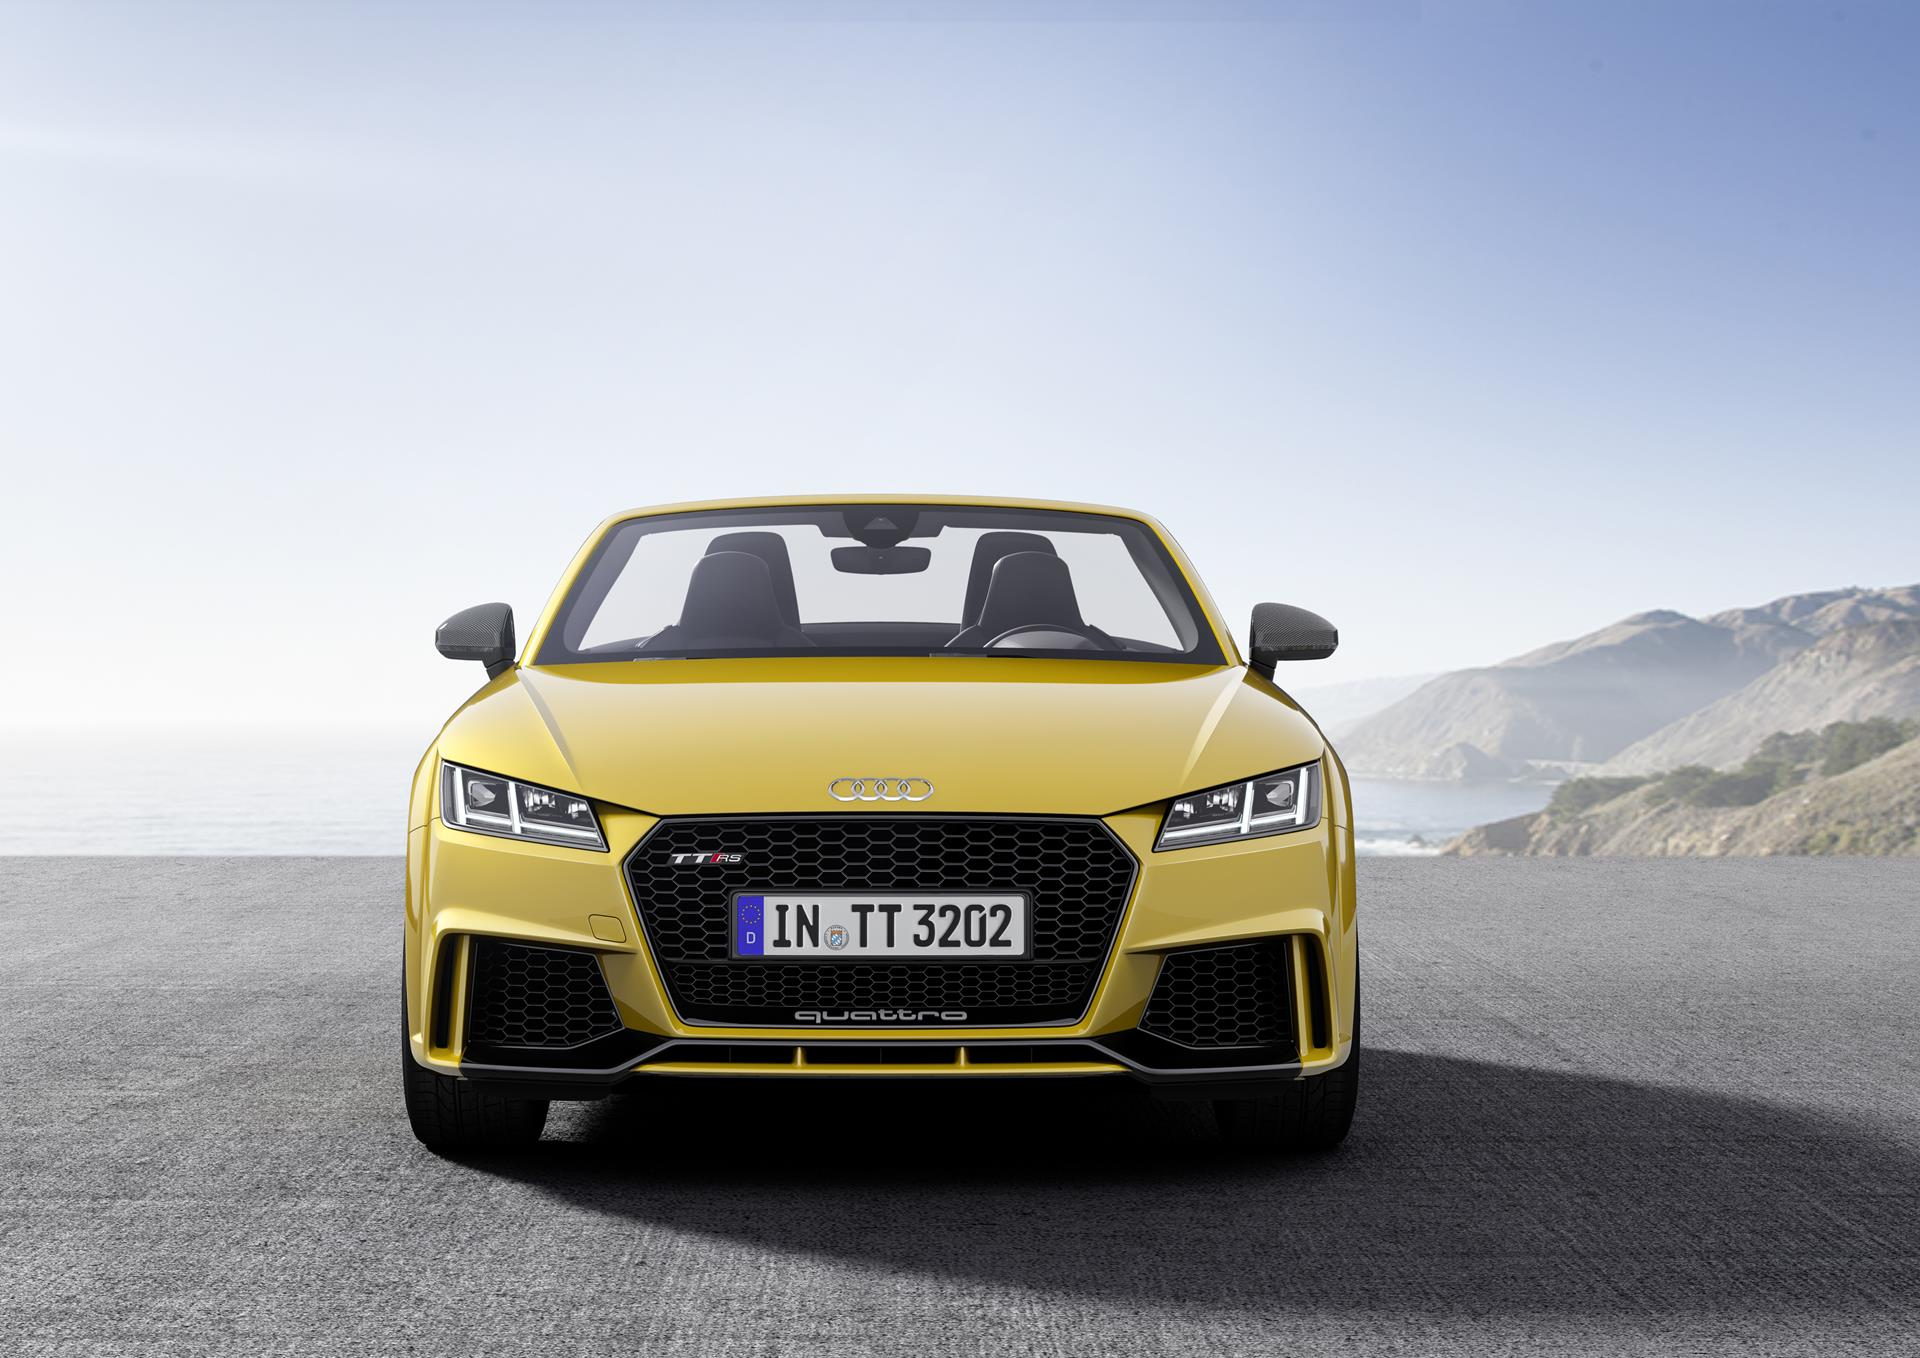 Audi has built a lighter and more powerful version of the TT coupe